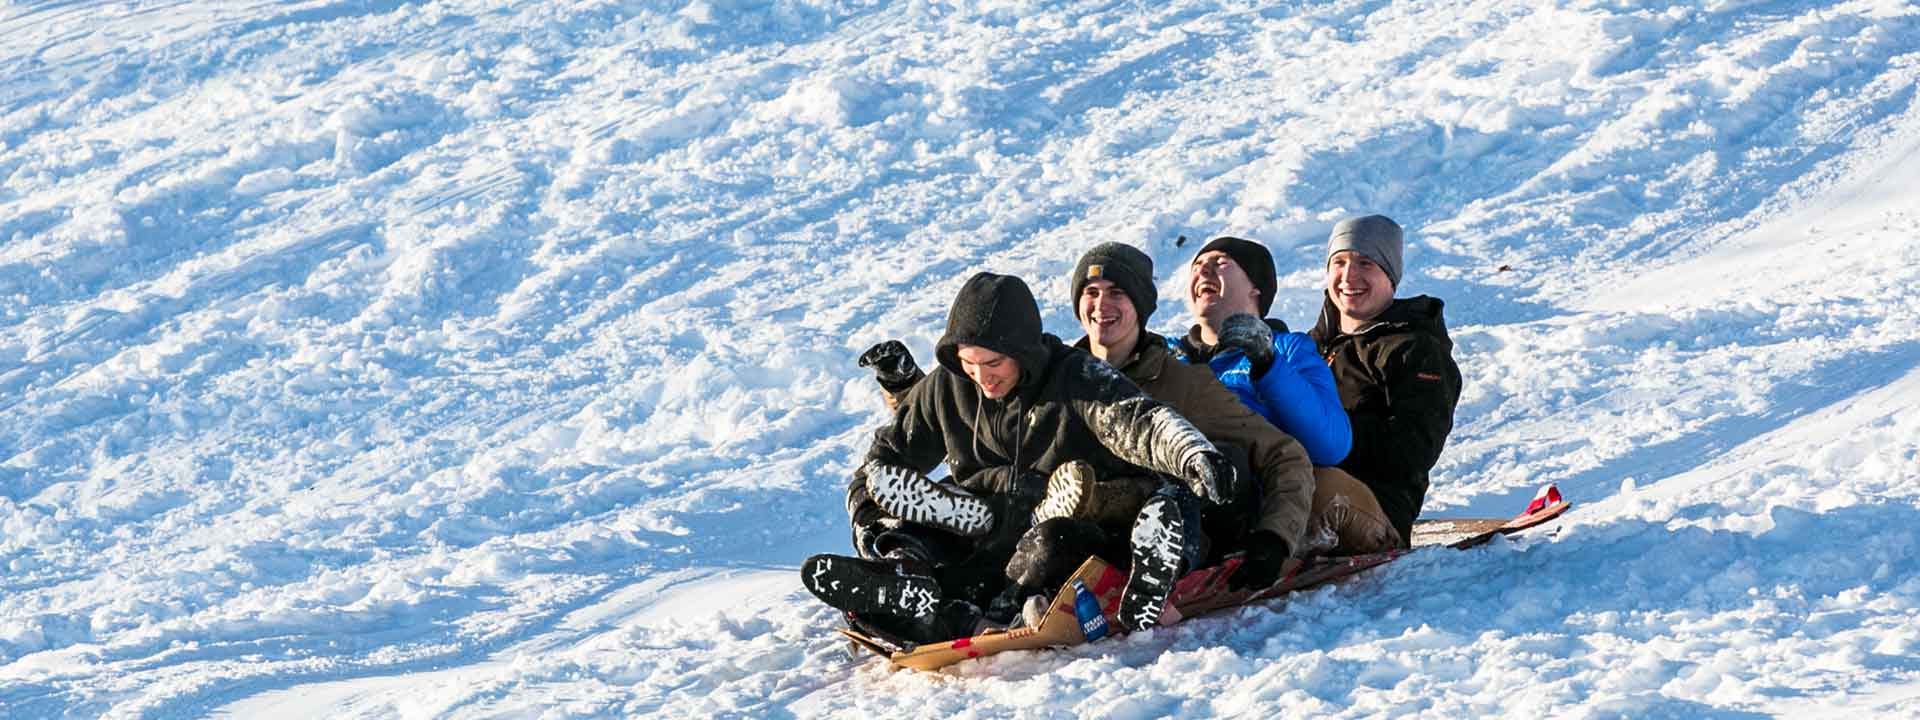 UAF students sledding on the Fairbanks campus